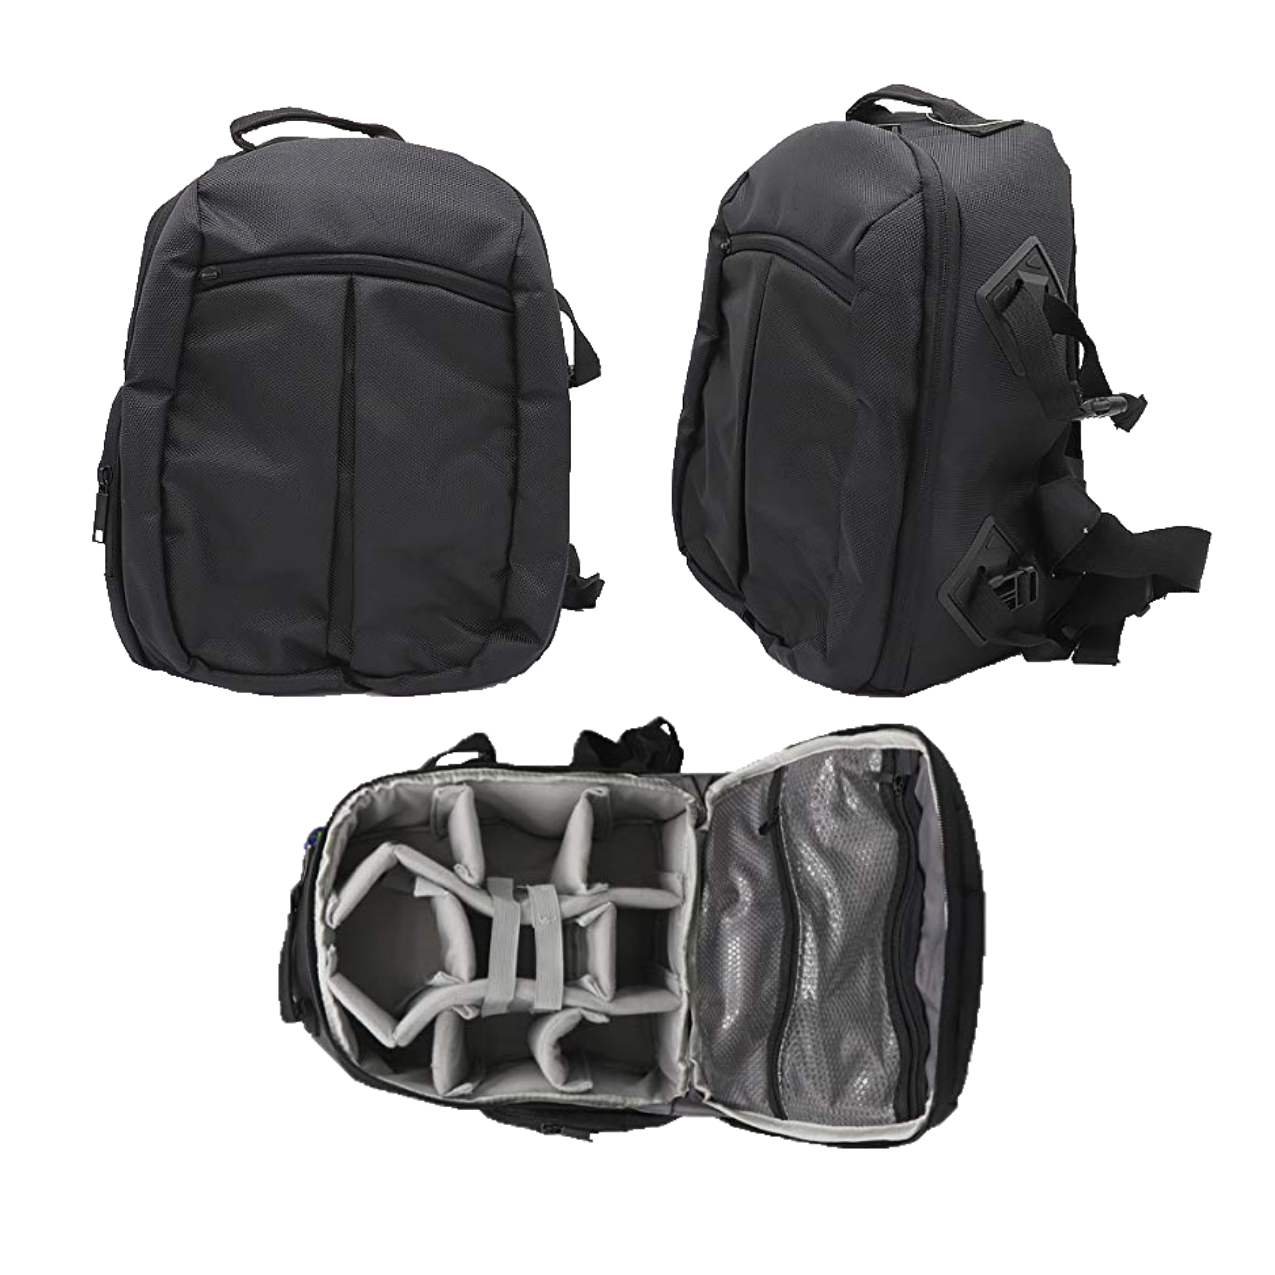 Solibag Slr Camera Travel Backpack Waterproof Carry Bag For Canon, Nikon, Sony, Pentax Black Shoulder Case -7001 Pack Of 3Pcs Camera Bags Camera Bags